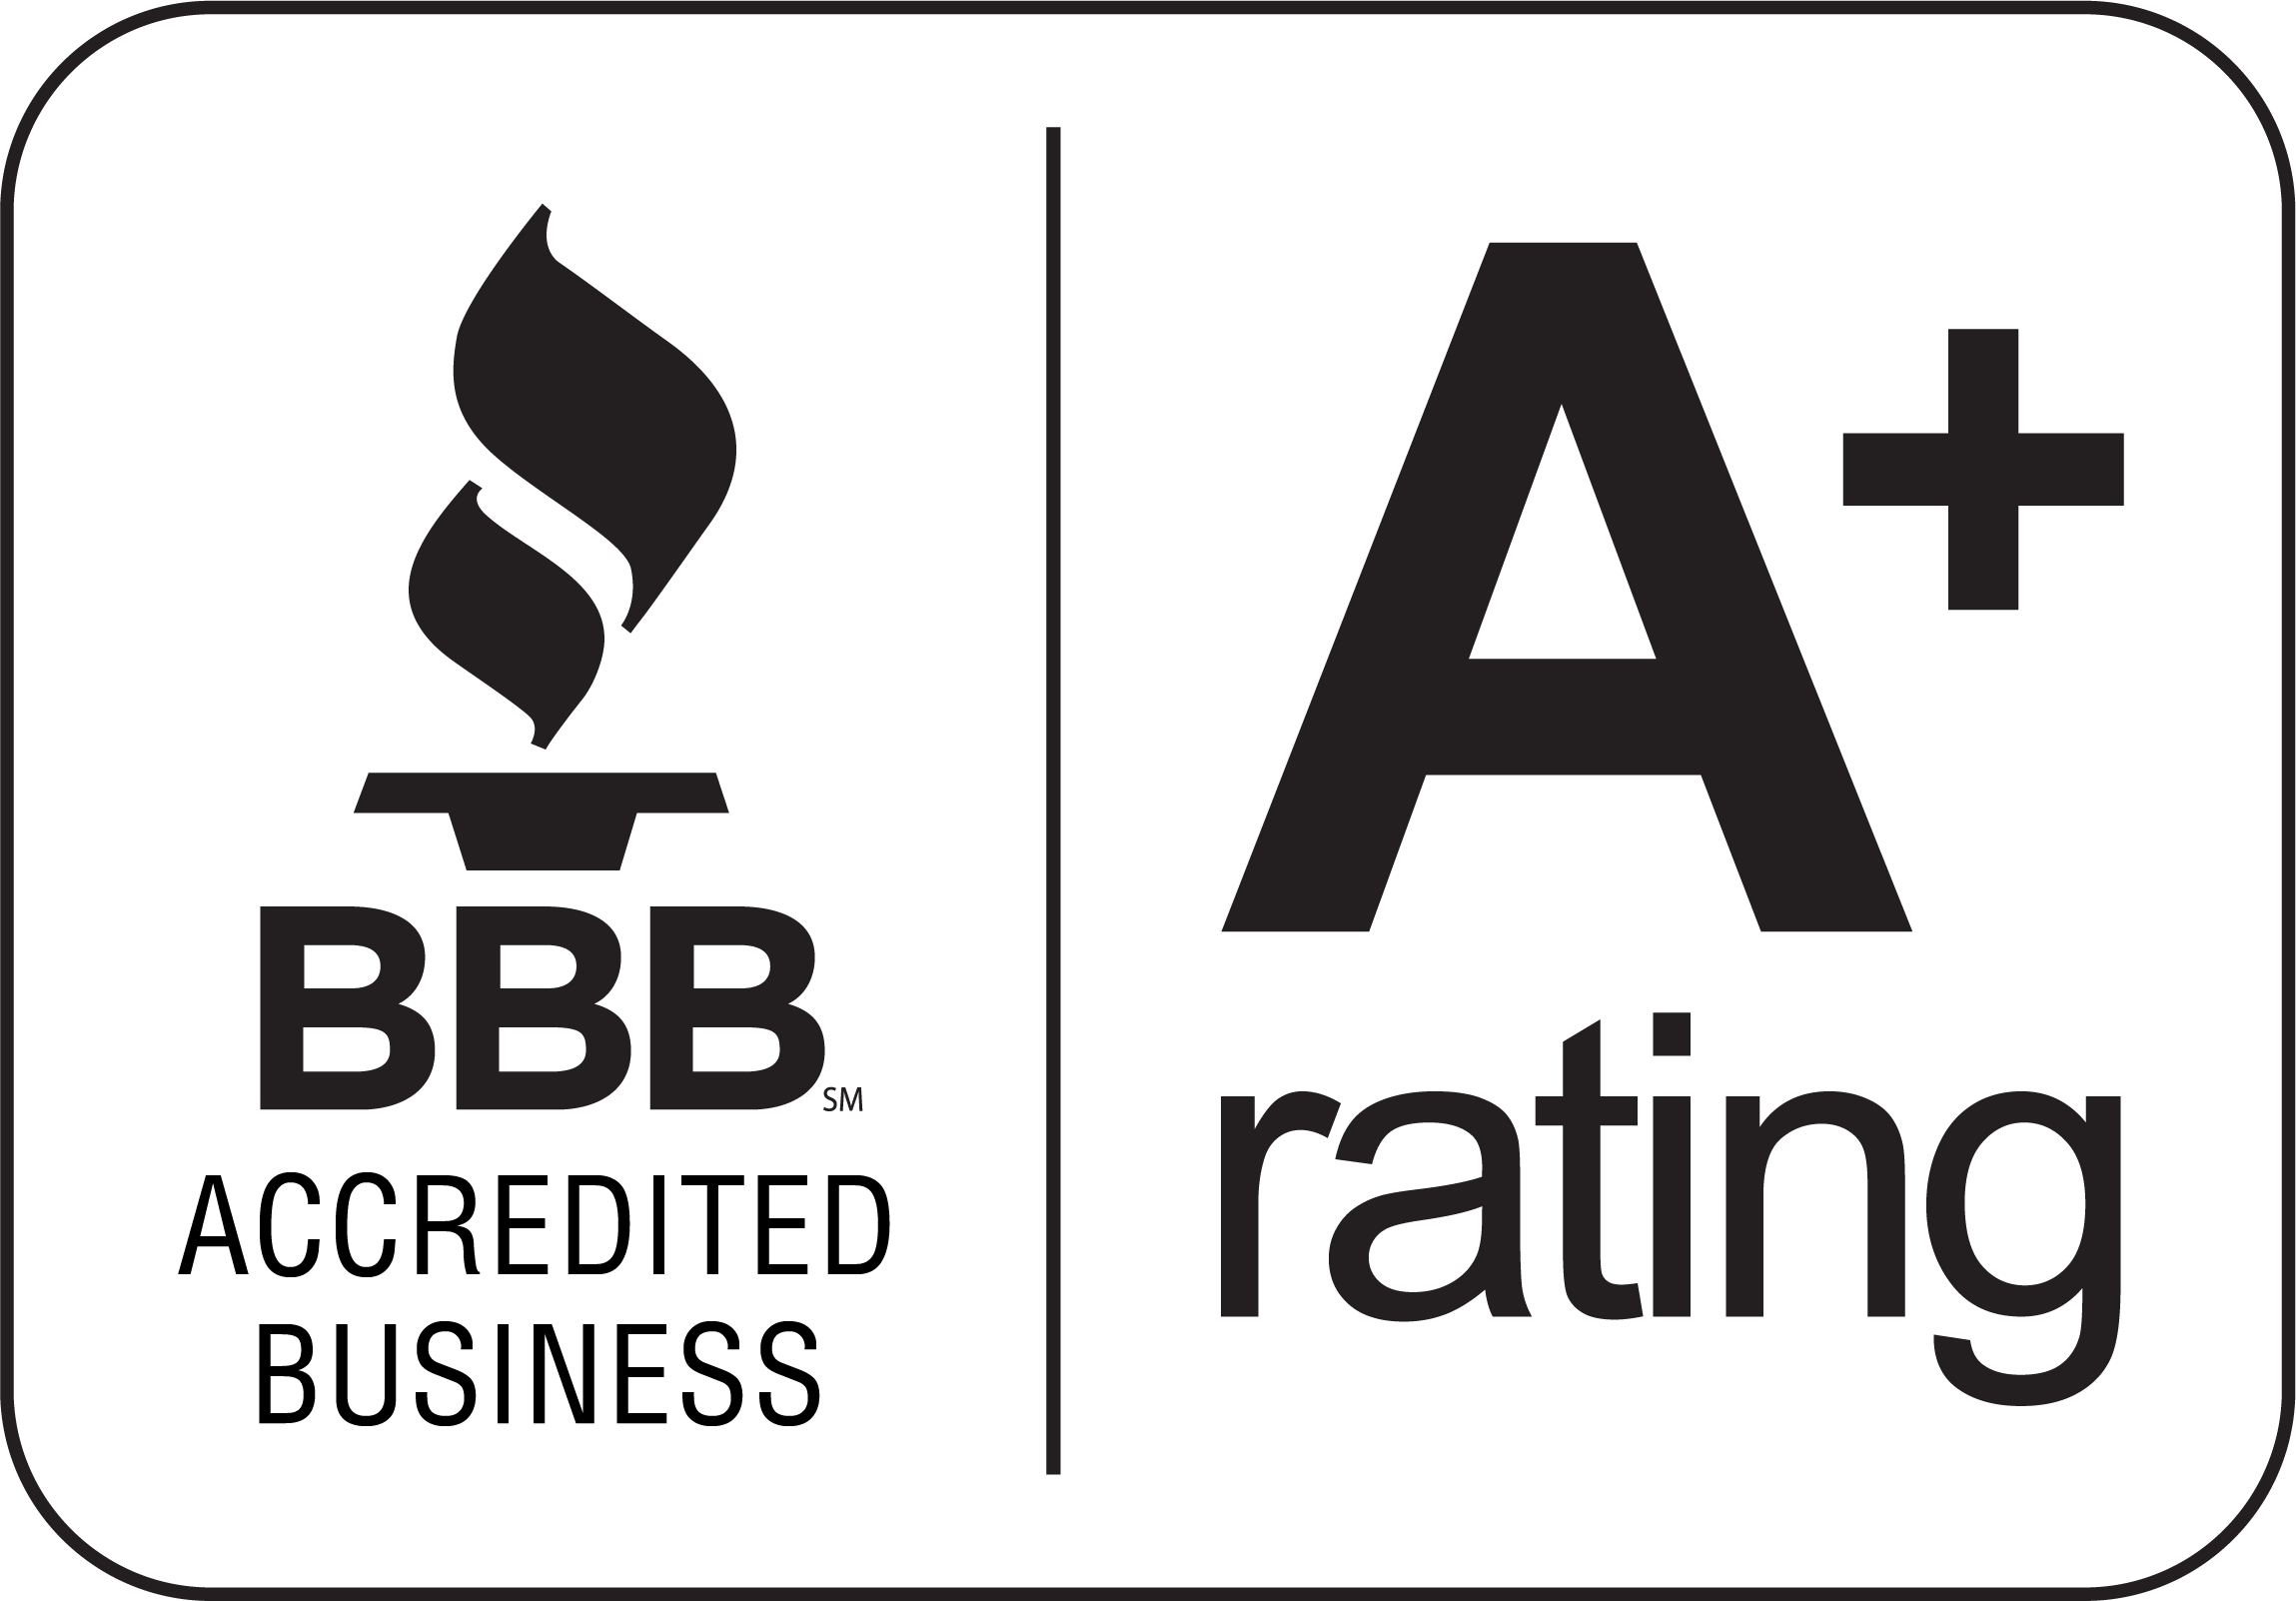 Better Business Bureau - A+ Rated